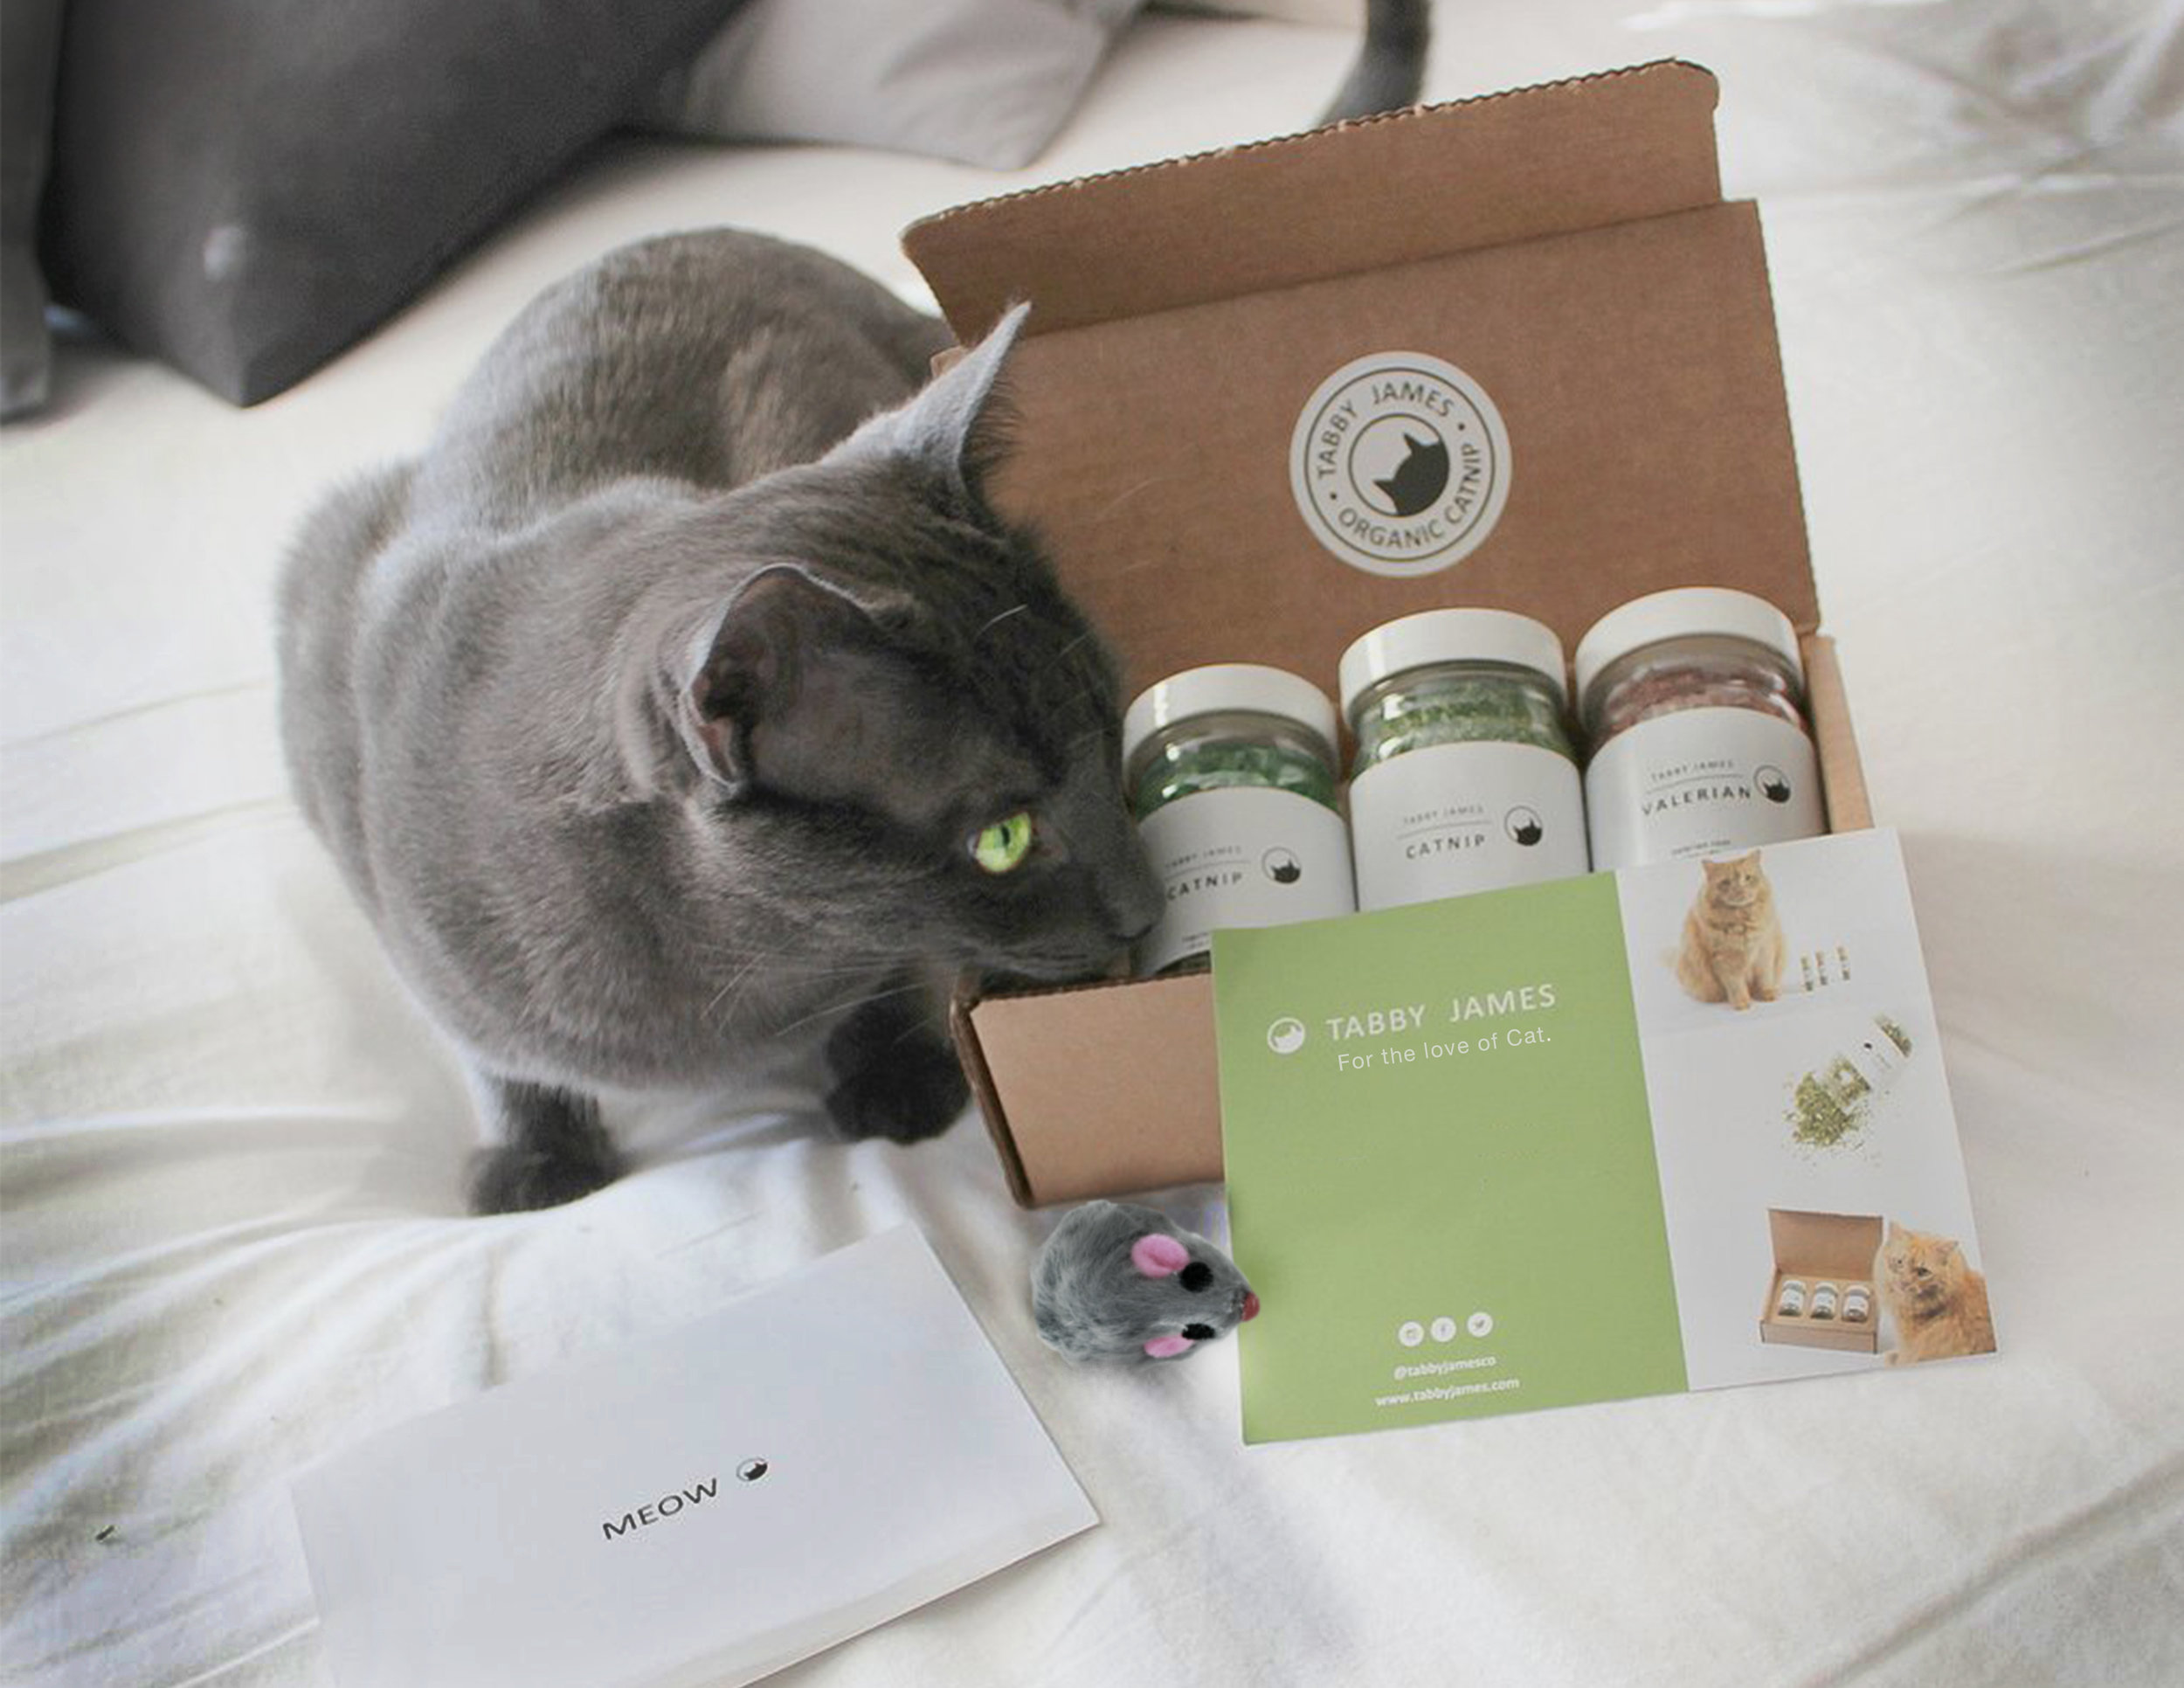 Catnip is finite. To help drive online sales, we created a subscription box that makes sure cat owners never run out of 'nip, while also gifting the subscriber with cat accessories.